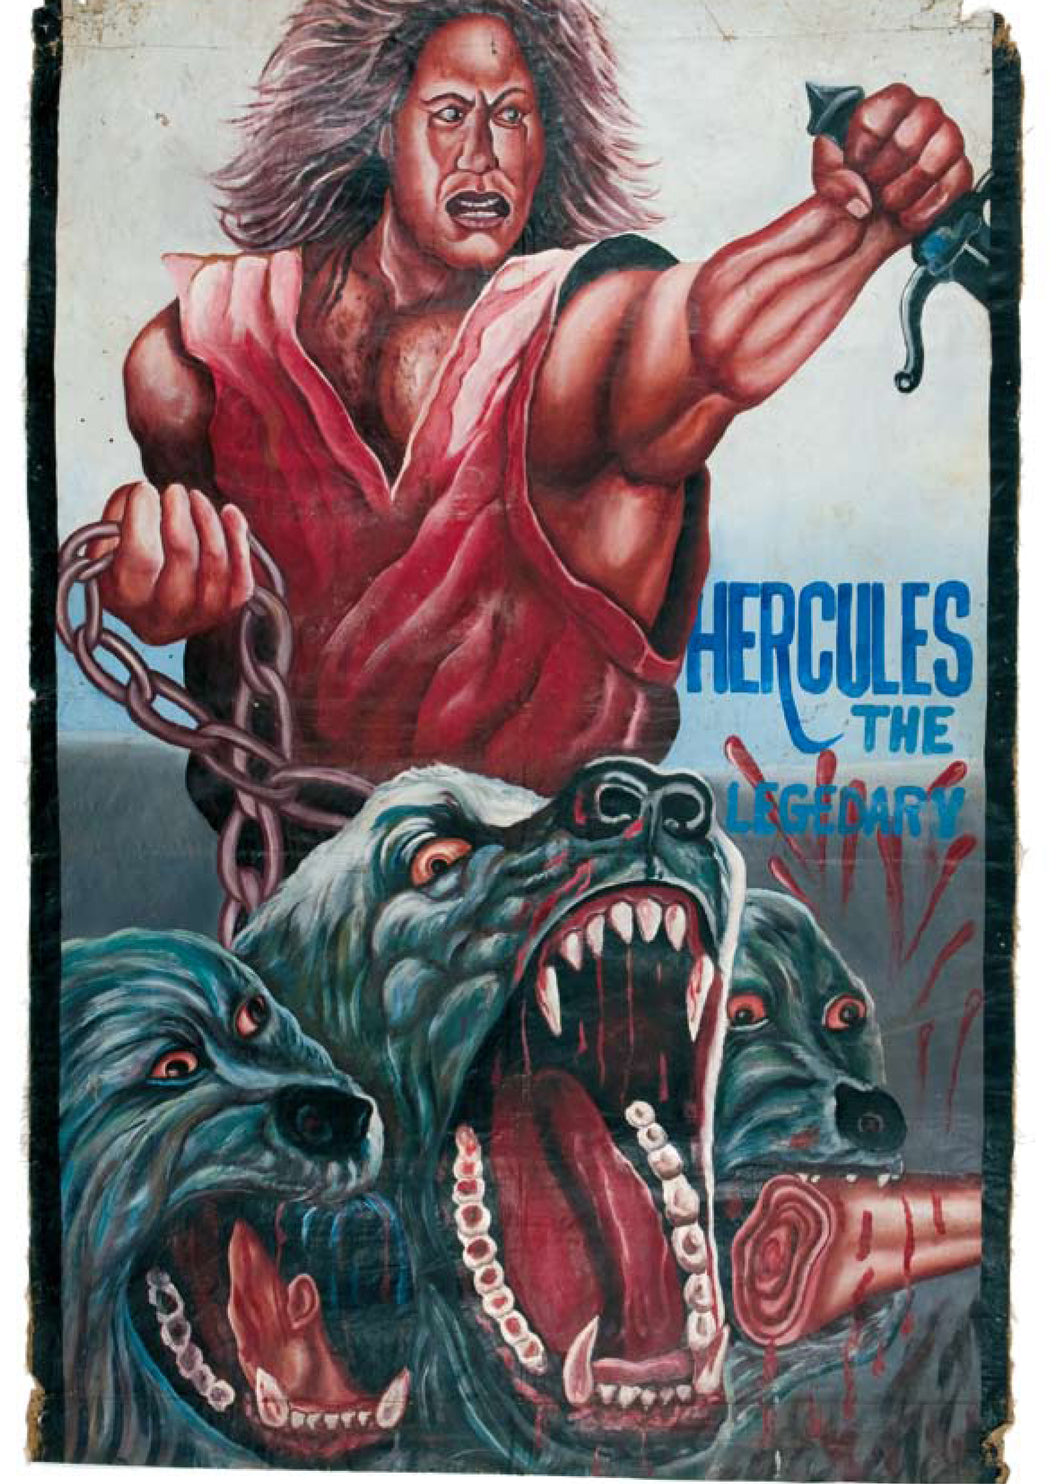 Hercules the Legendary